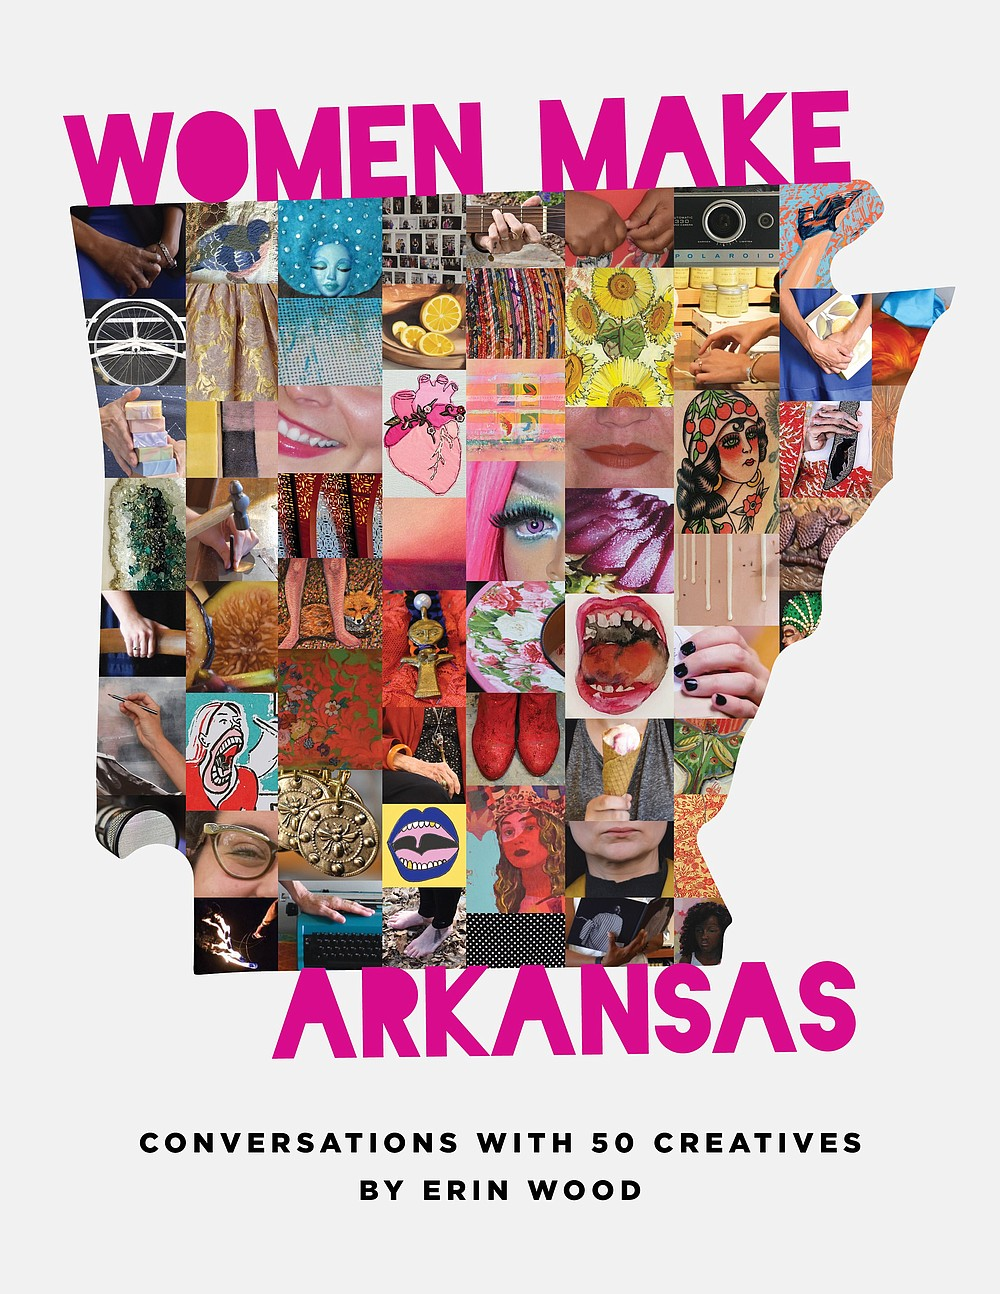 Women Make Arkansas: Conversations with 50 Creatives by Erin Wood, published by Et Alia Press in Little Rock